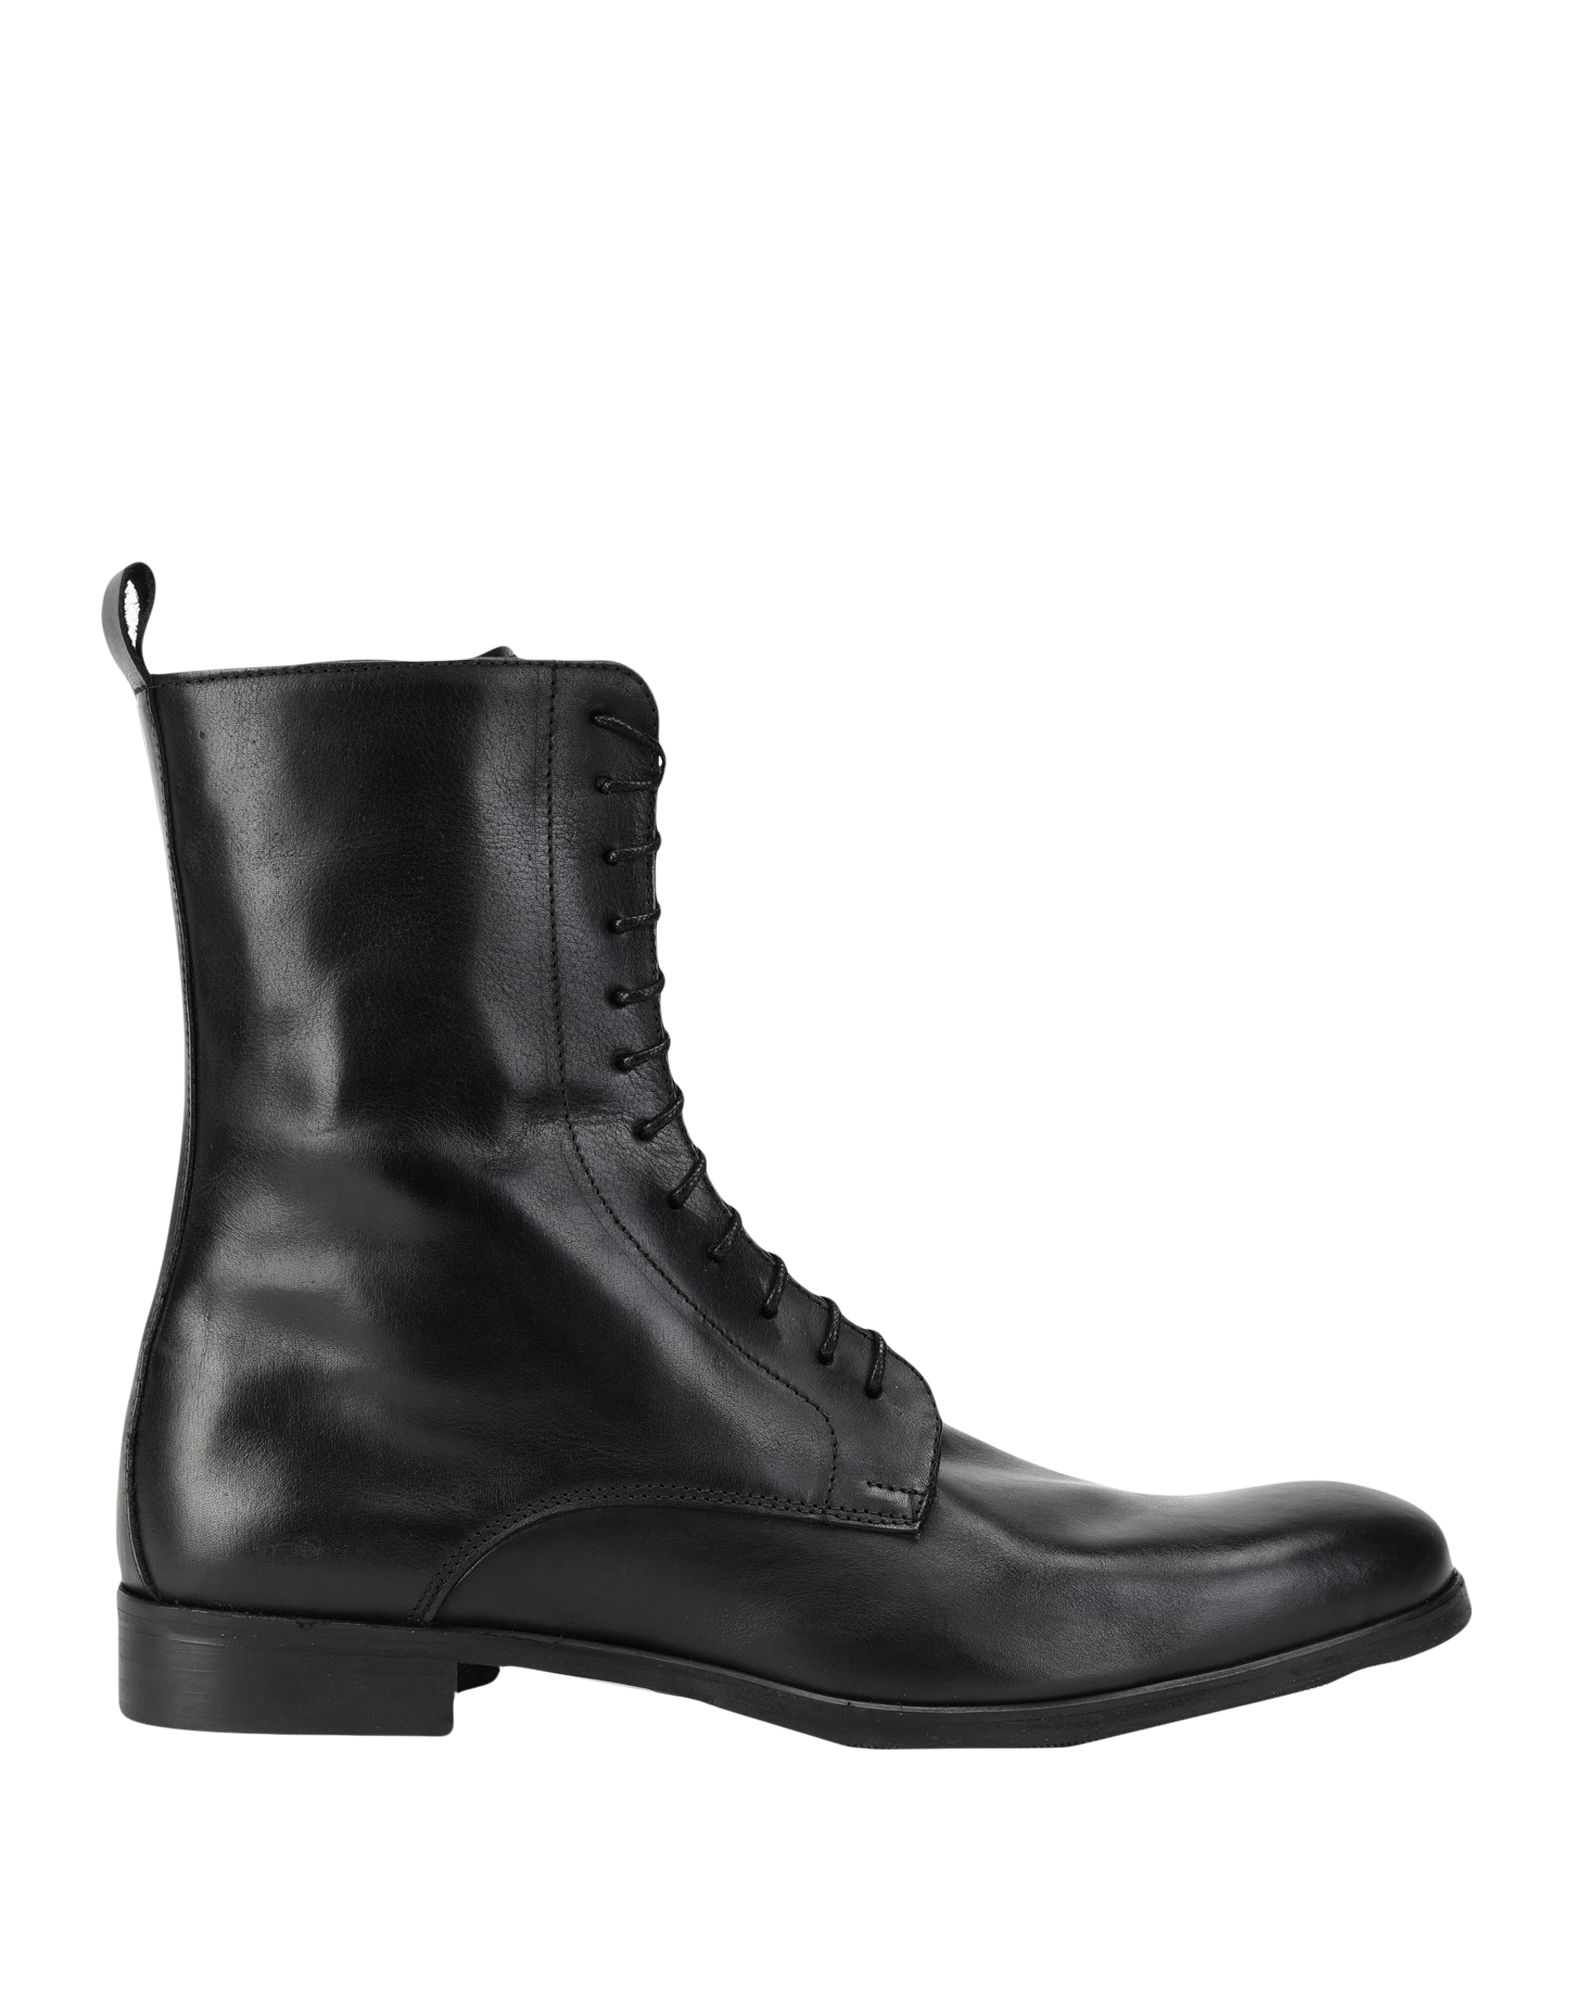 Leonardo Principi Boots - Men on Leonardo Principi Boots online on Men  Australia - 11542226XO 26aec7